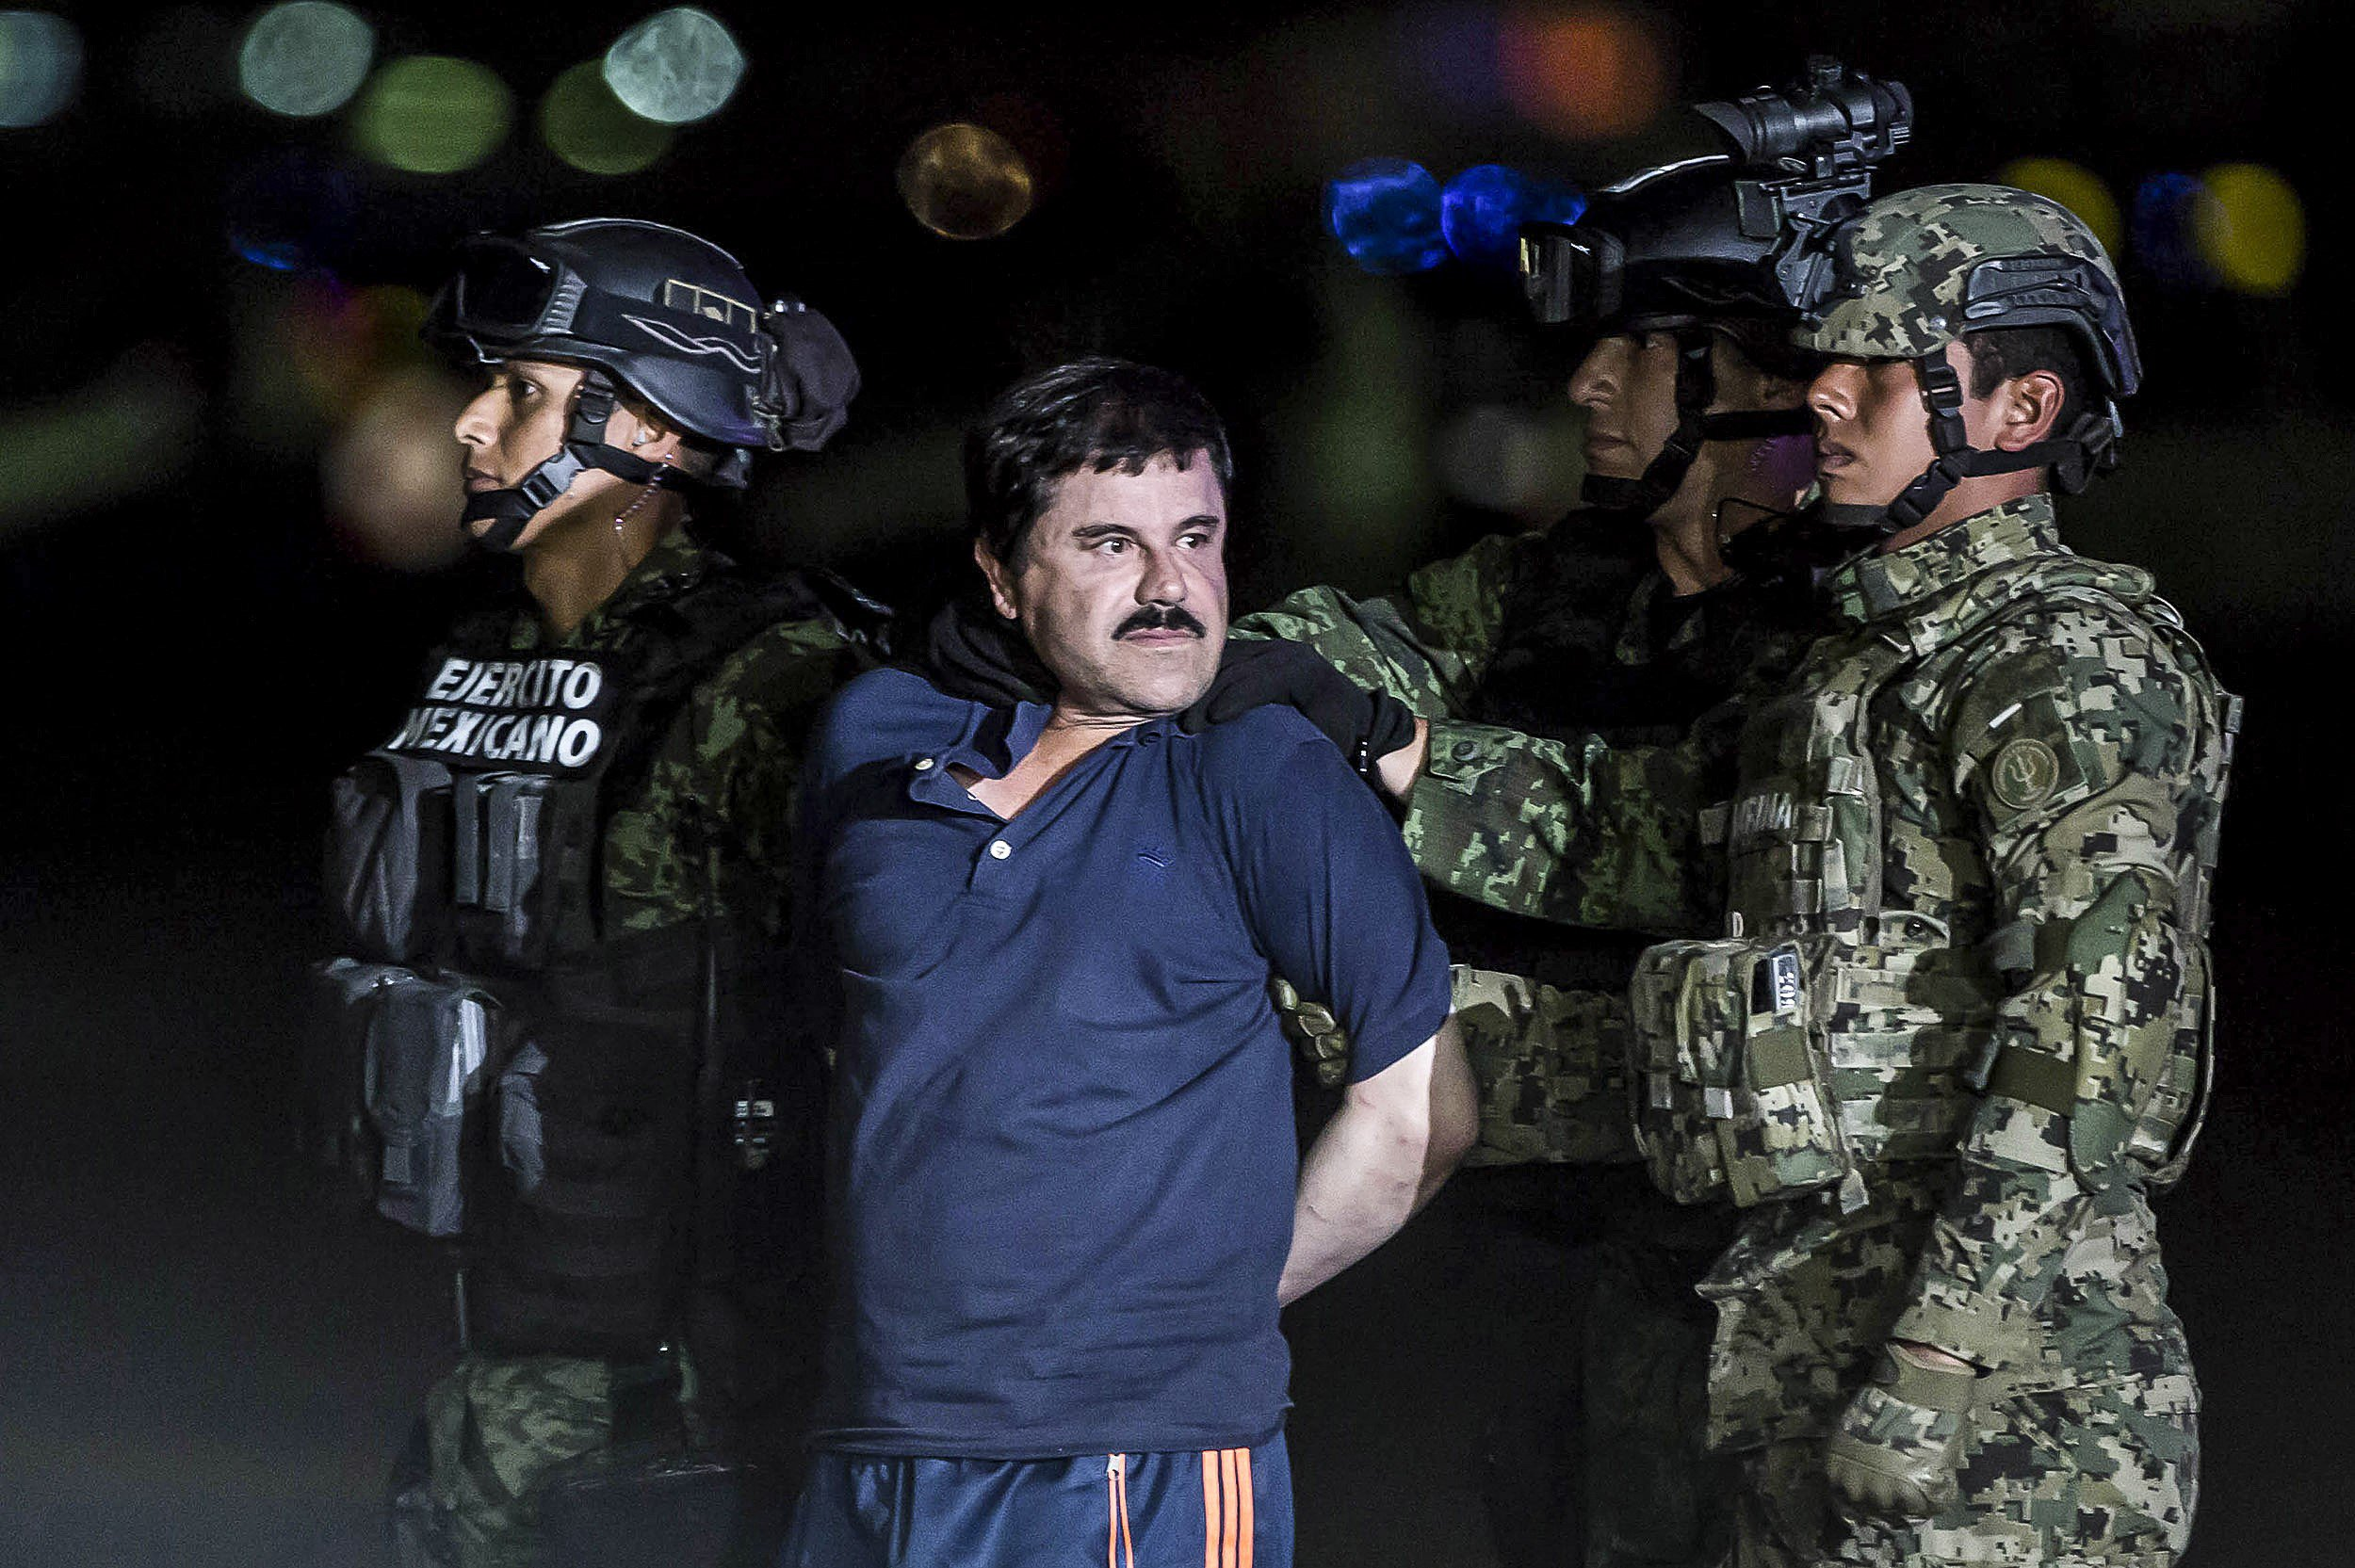 """MEXICO CITY, MEXICO - JANUARY 8: Joaquin Guzman Loera, also known as """"El Chapo"""" is transported to Maximum Security Prison of El Altiplano in Mexico City, Mexico on January 08, 2016. Guzman Loera, leader of Mexico's Sinaloa drug Cartel, was considered the Mexican most-wanted drug lord. Mexican marines captured """"El Chapo"""" on Friday in Sinaloa, North of Mexico. (Photo by Daniel Cardenas/Anadolu Agency/Getty Images)"""